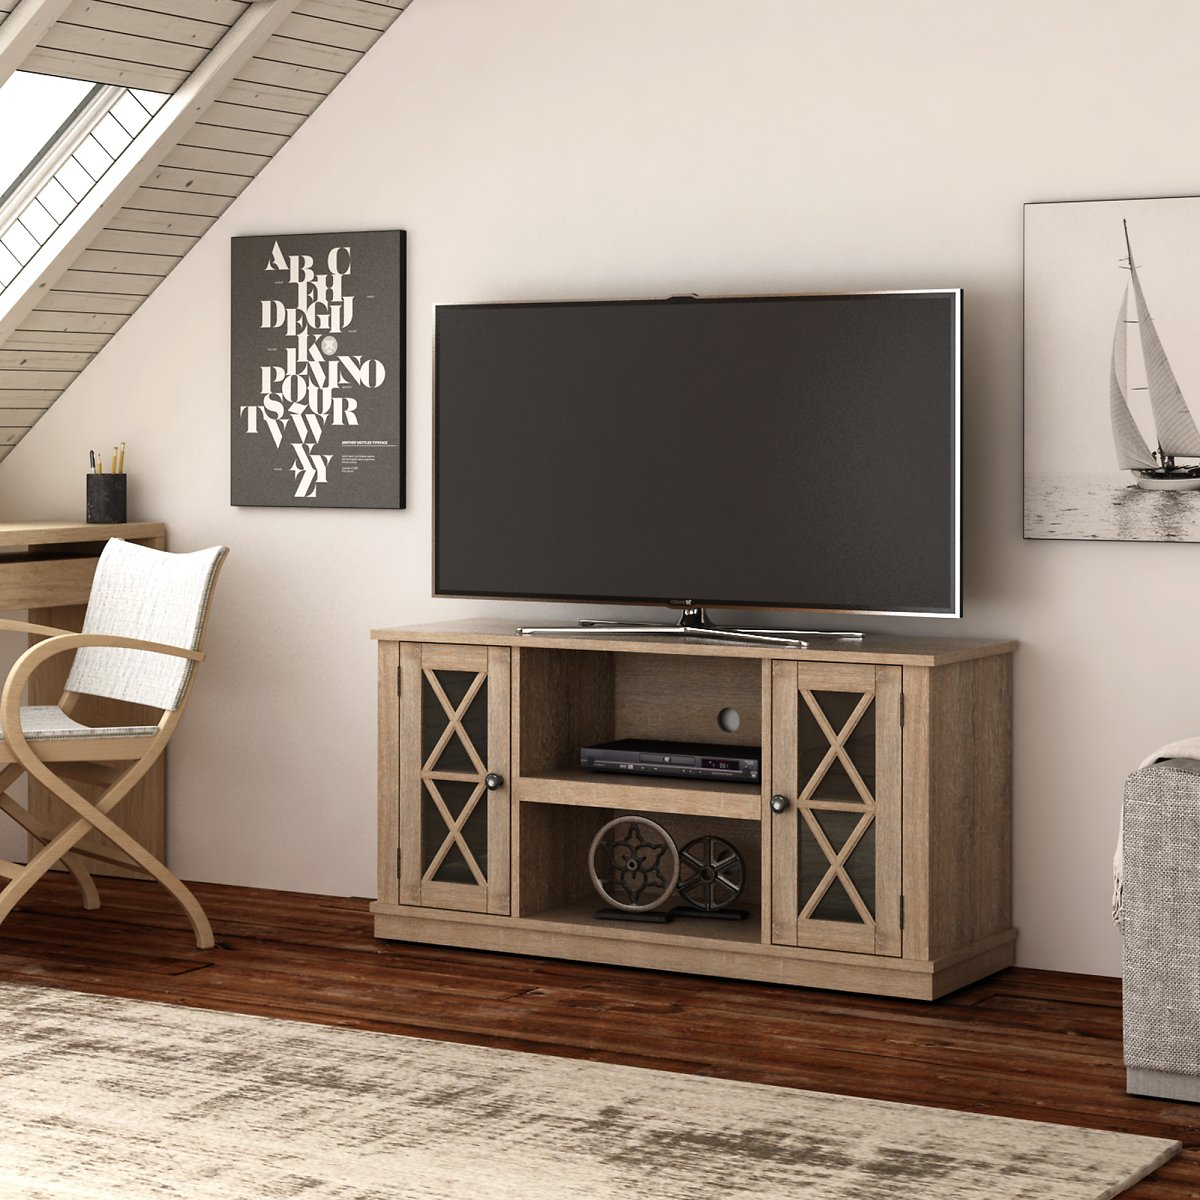 Twin Star Home Stanton Ridge ( Color,Natural $99.99 ) TV Stand for TVs up to 55